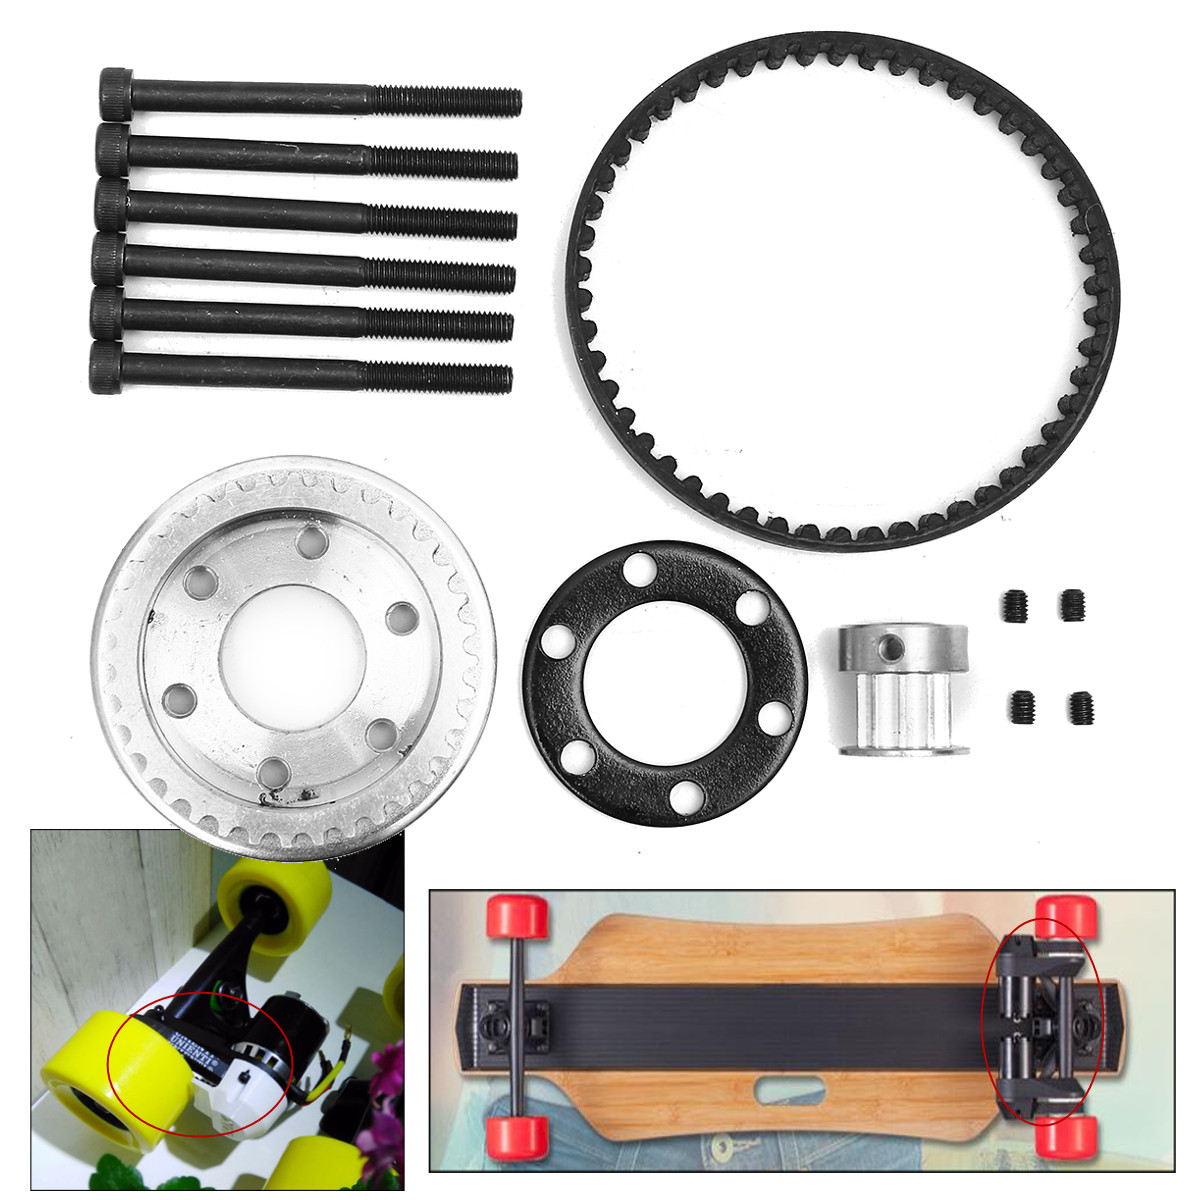 DIY Electric Skateboard Parts Pulleys And Motor Mount Kit For 83\/90\/97MM Wheels  eBay